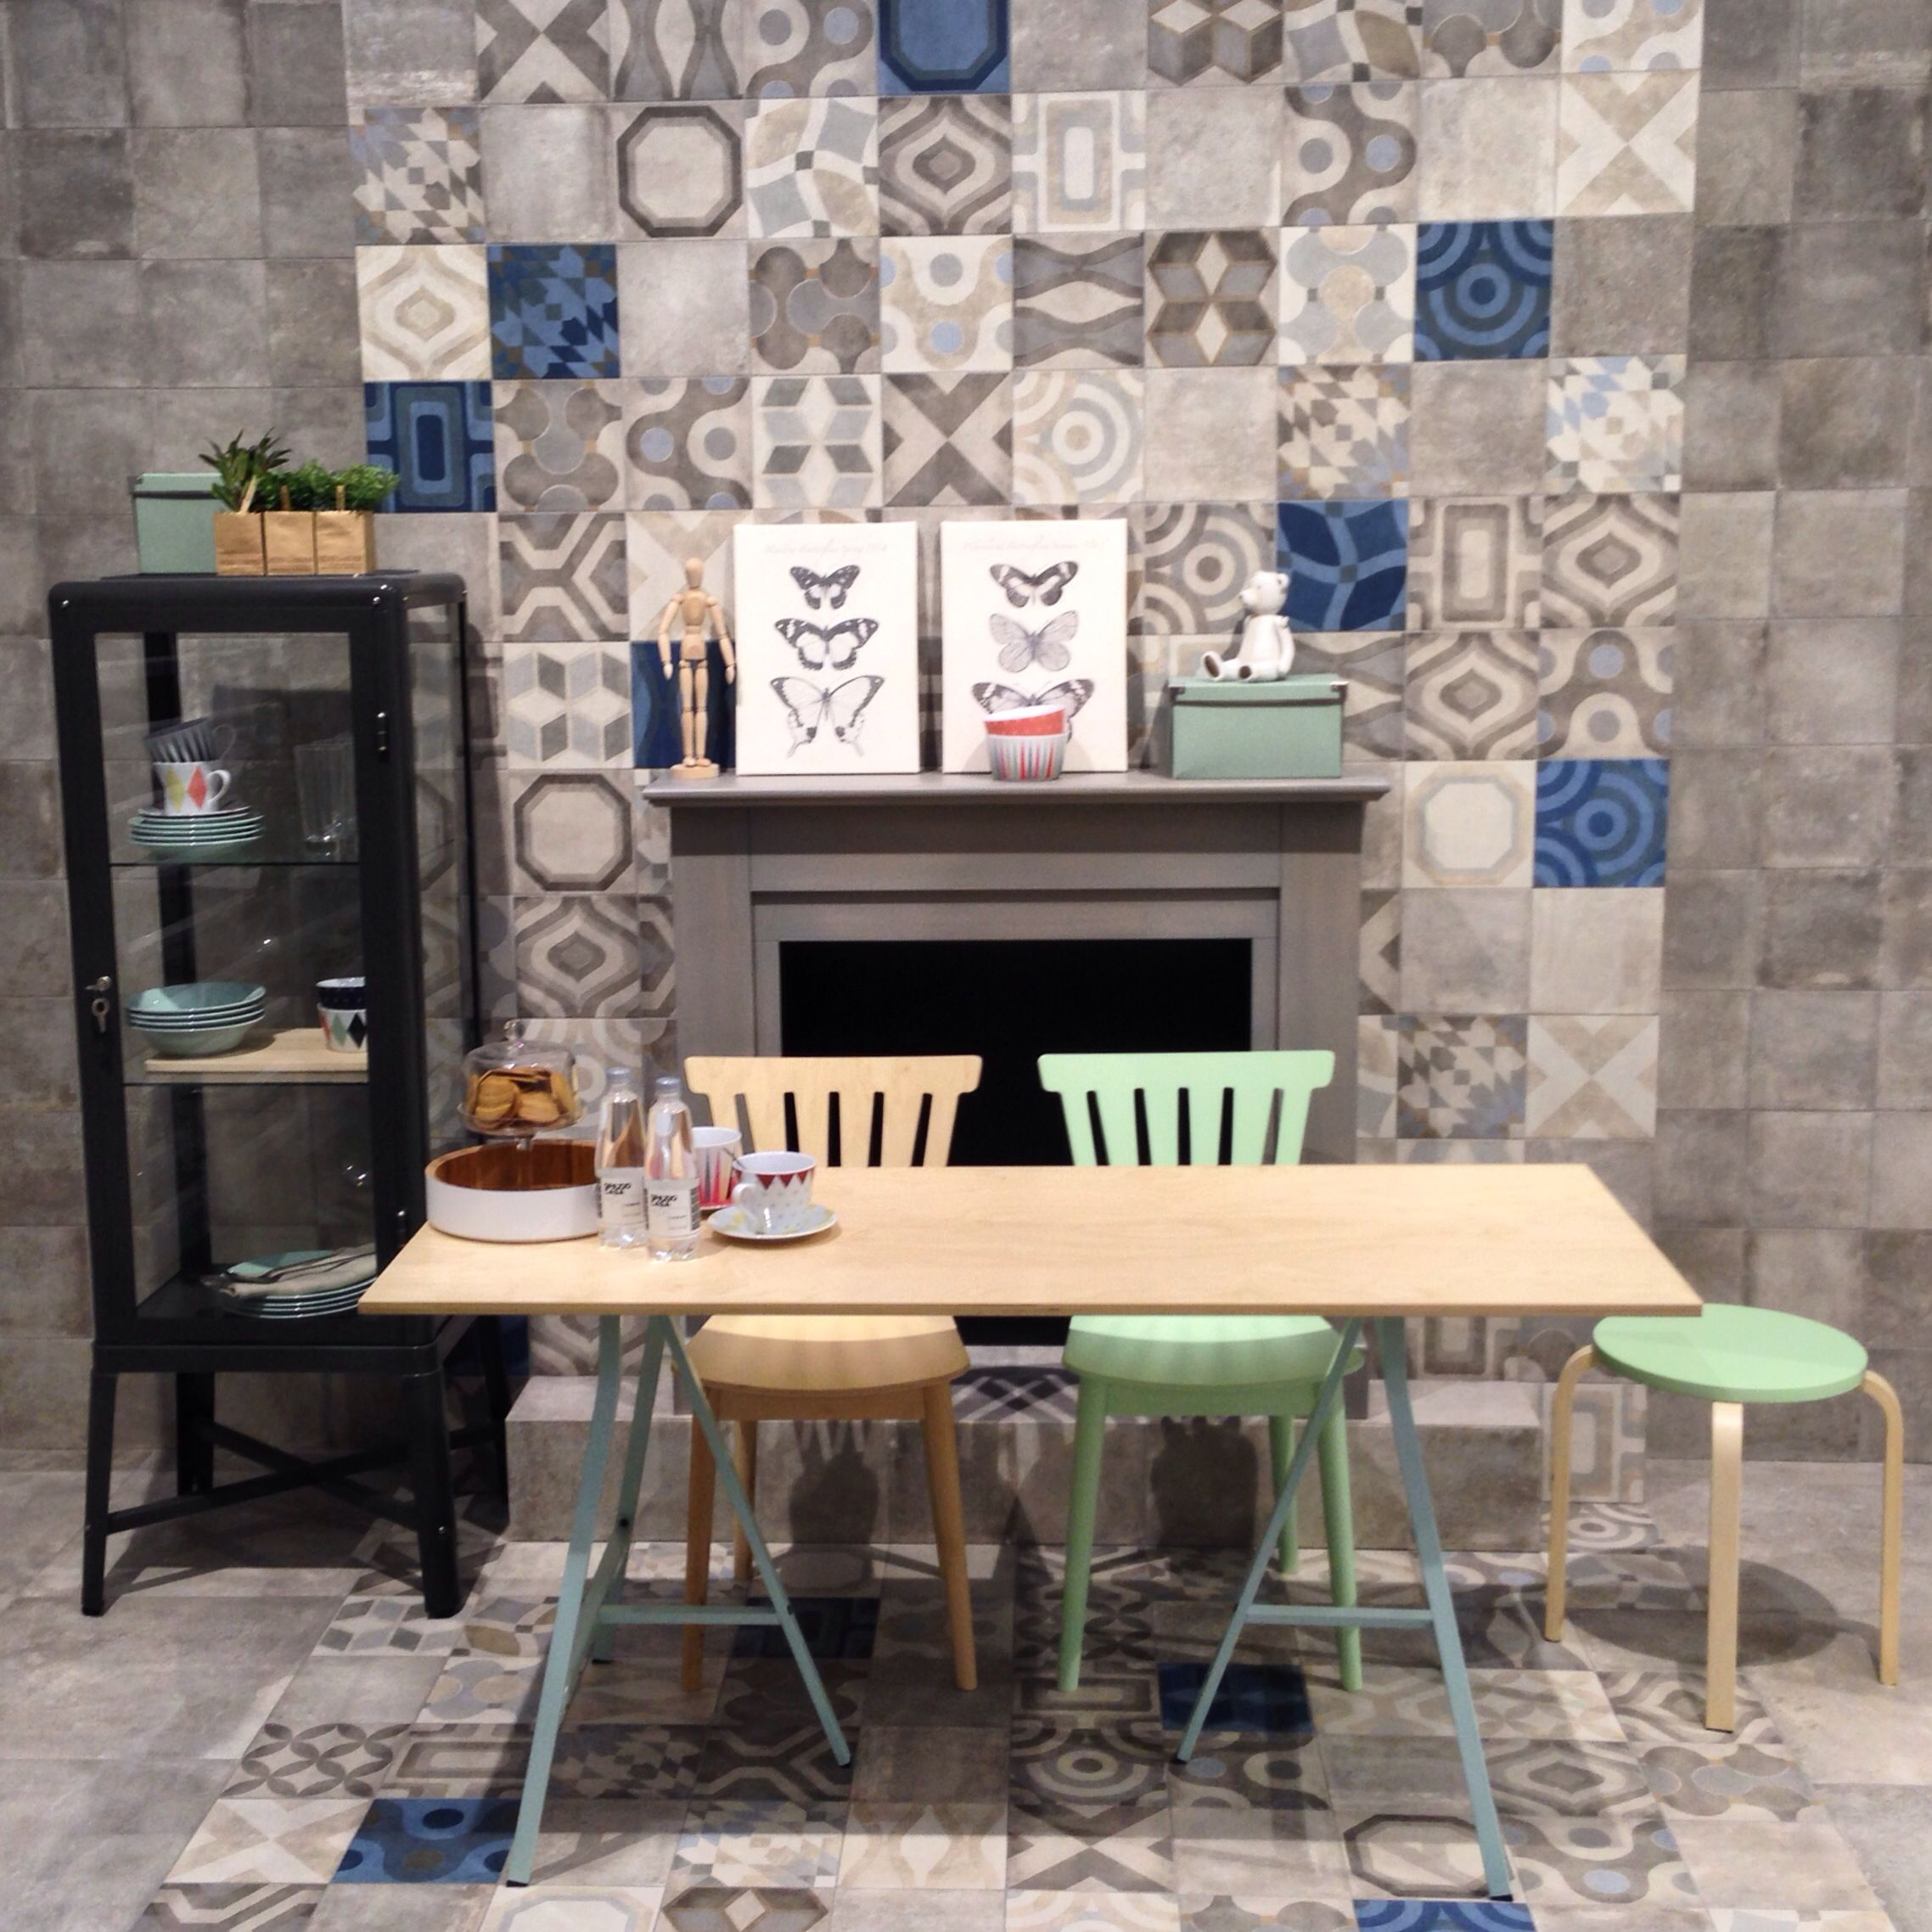 Memory of cerim florim booth l11063 hall s1 coverings 2014 las memory of cerim florim booth l11063 hall s1 coverings 2014 las vegas tile dailygadgetfo Image collections